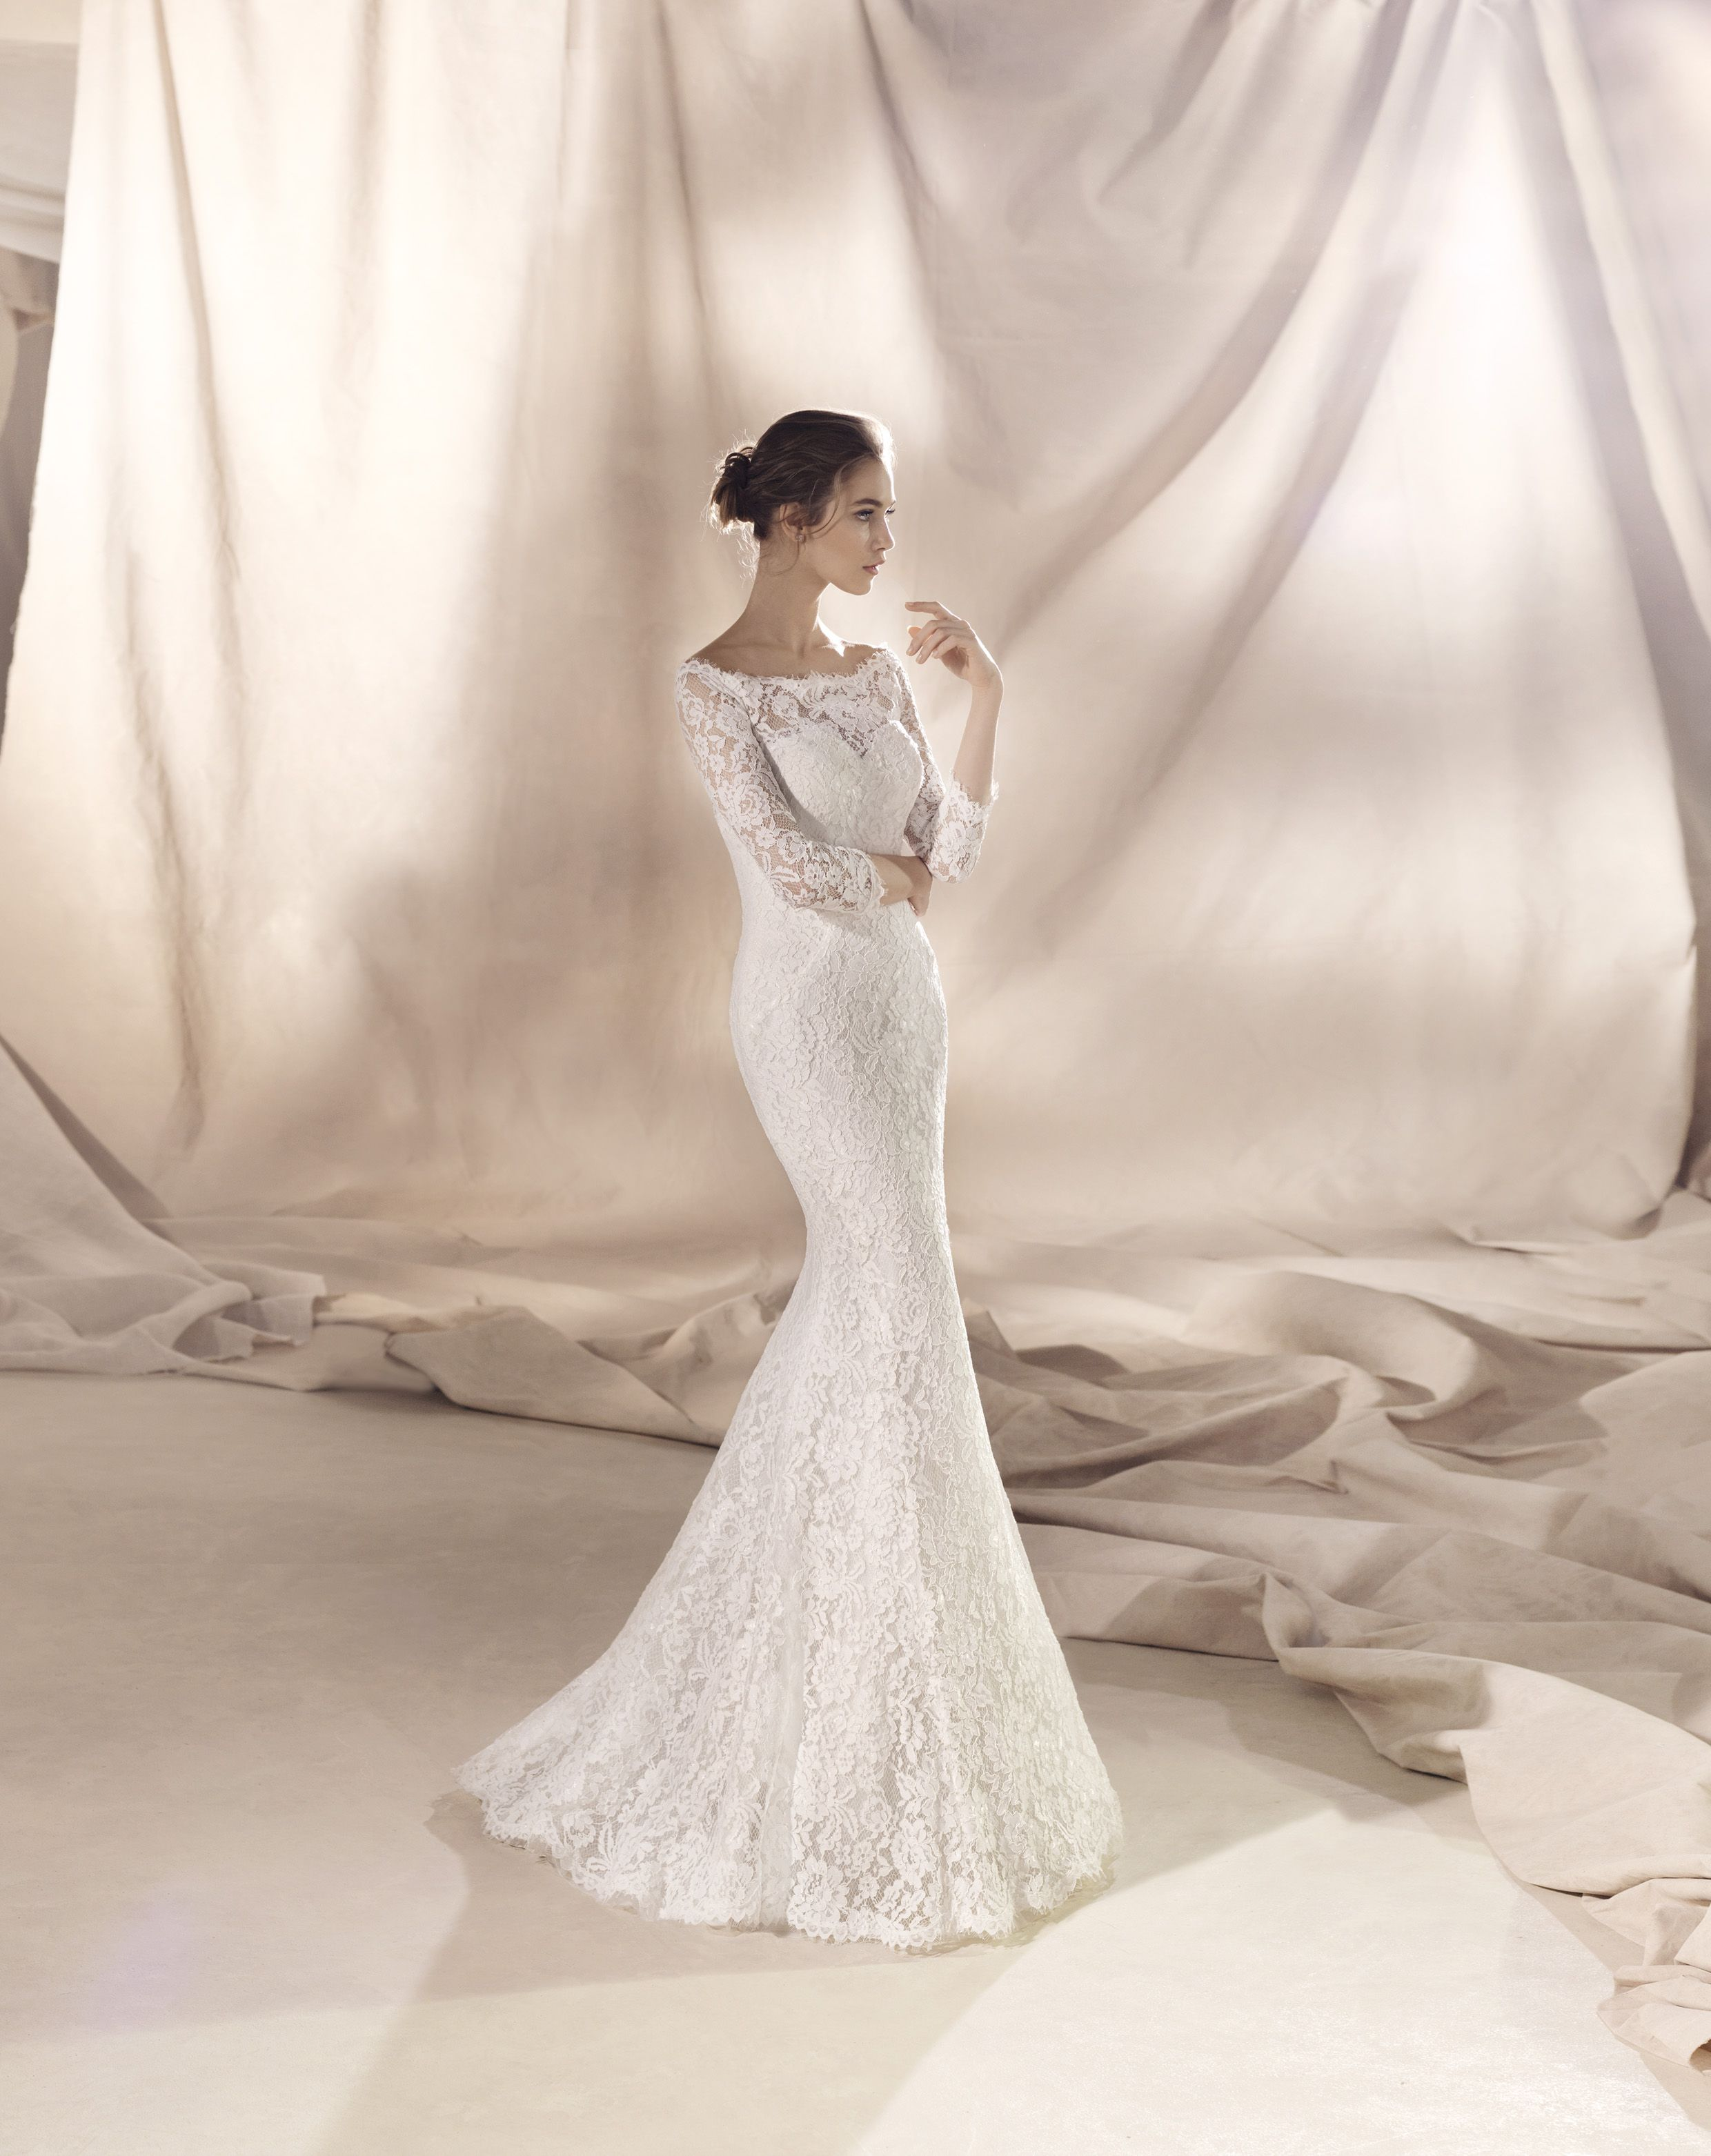 White One Collection 2018 Pronovias Fashion Group Beautiful Mermaid Wedding Dress In Lace A Sweetheart Neckline Combined With Semi S Vestidos Casamento Look